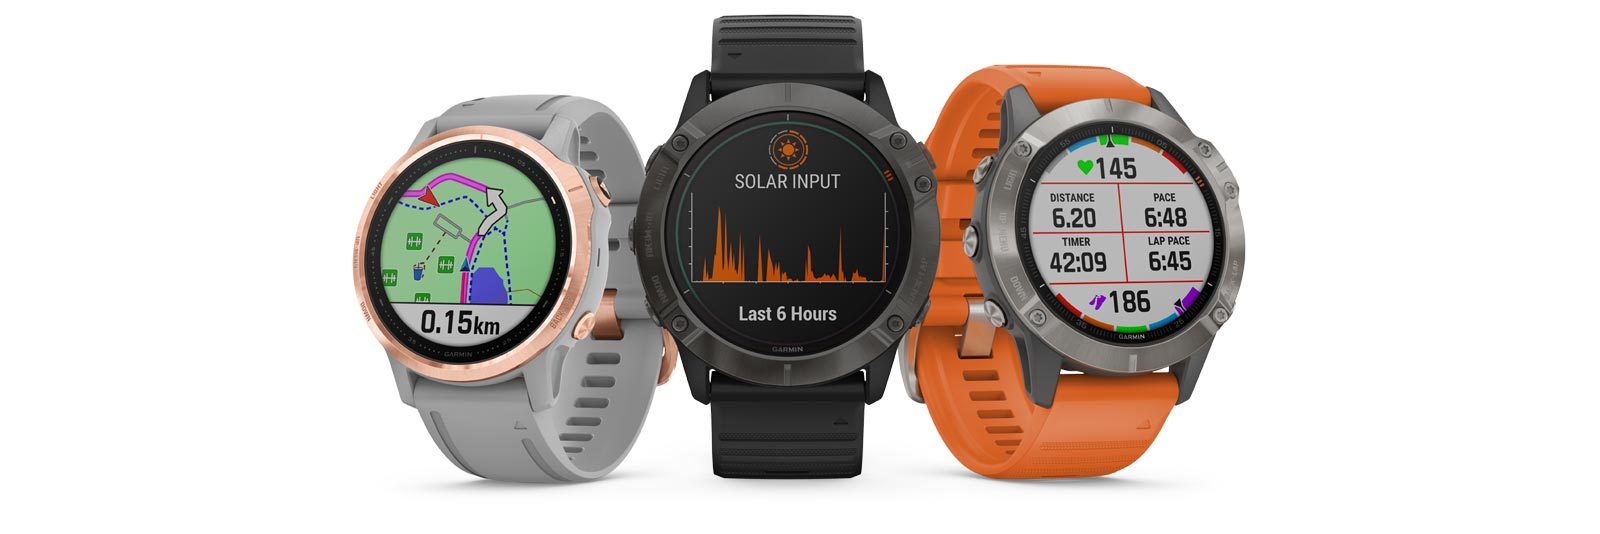 Montre GPS Garmin Fenix 6 Series